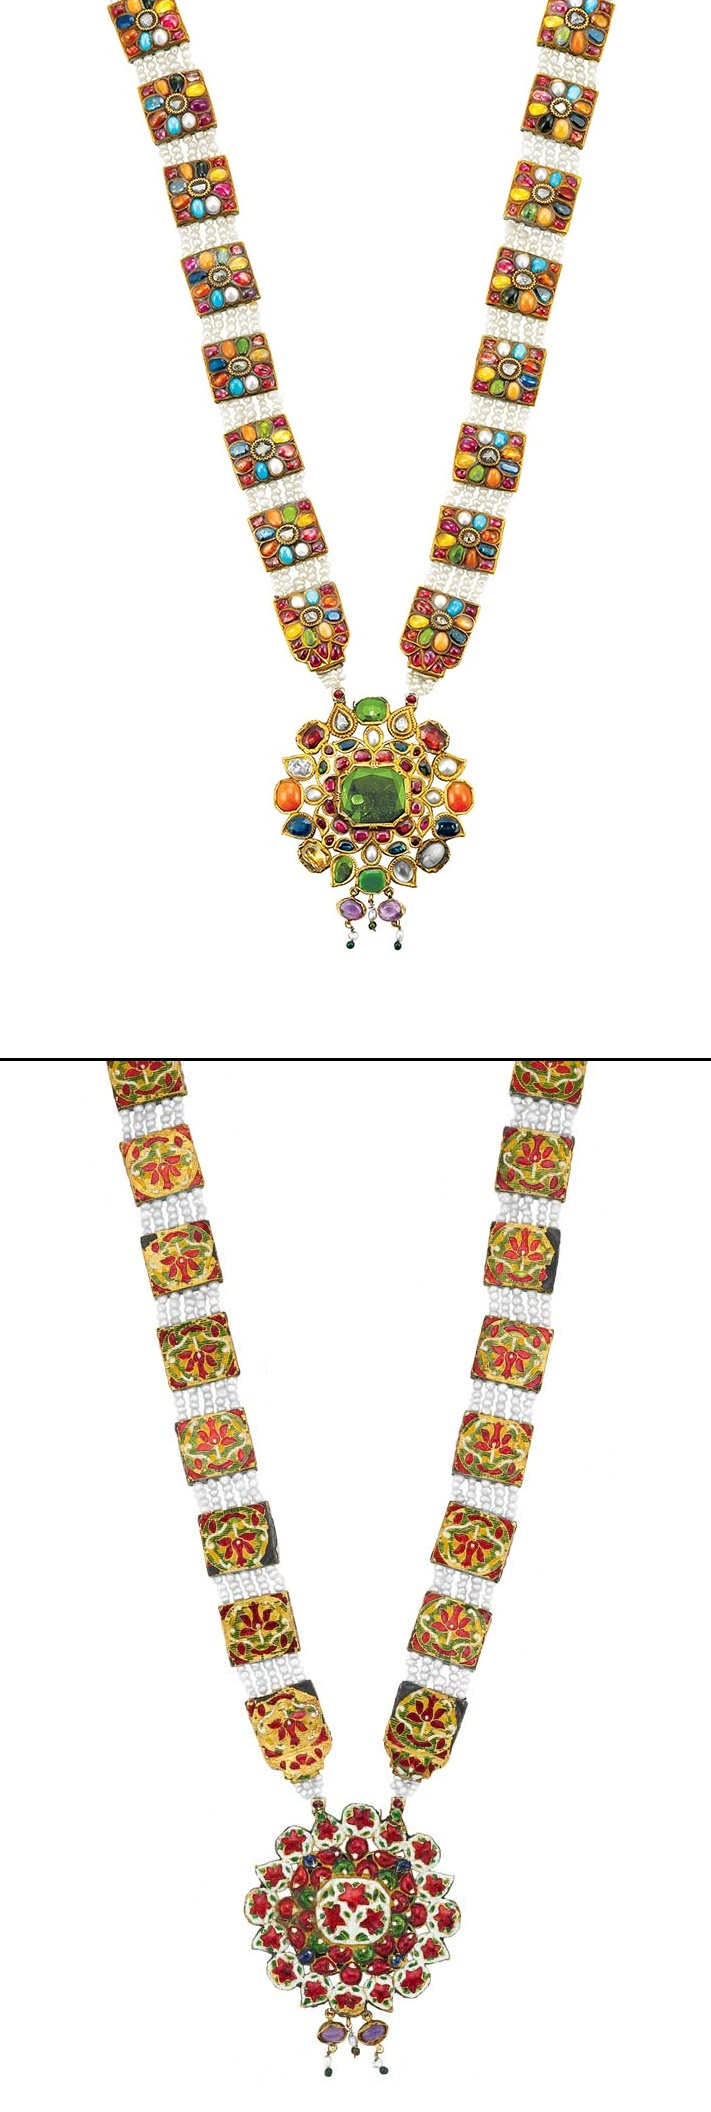 Intricate kt gold necklace set with multicolored precious gems and